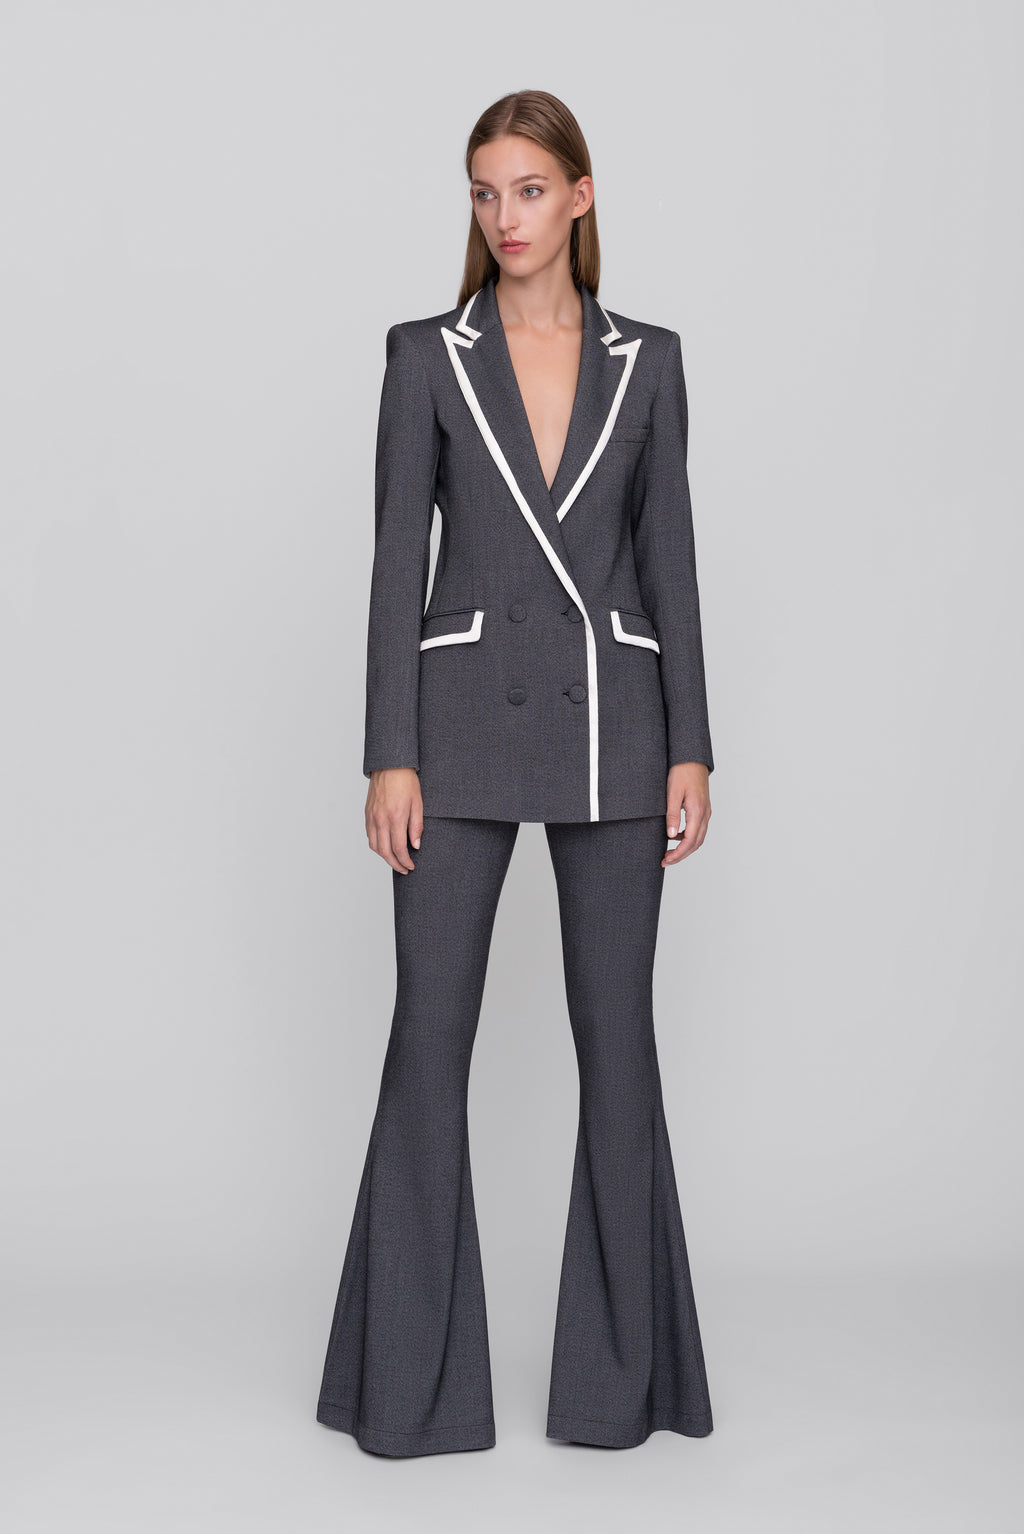 The Salt & Pepper Bianca Blazer